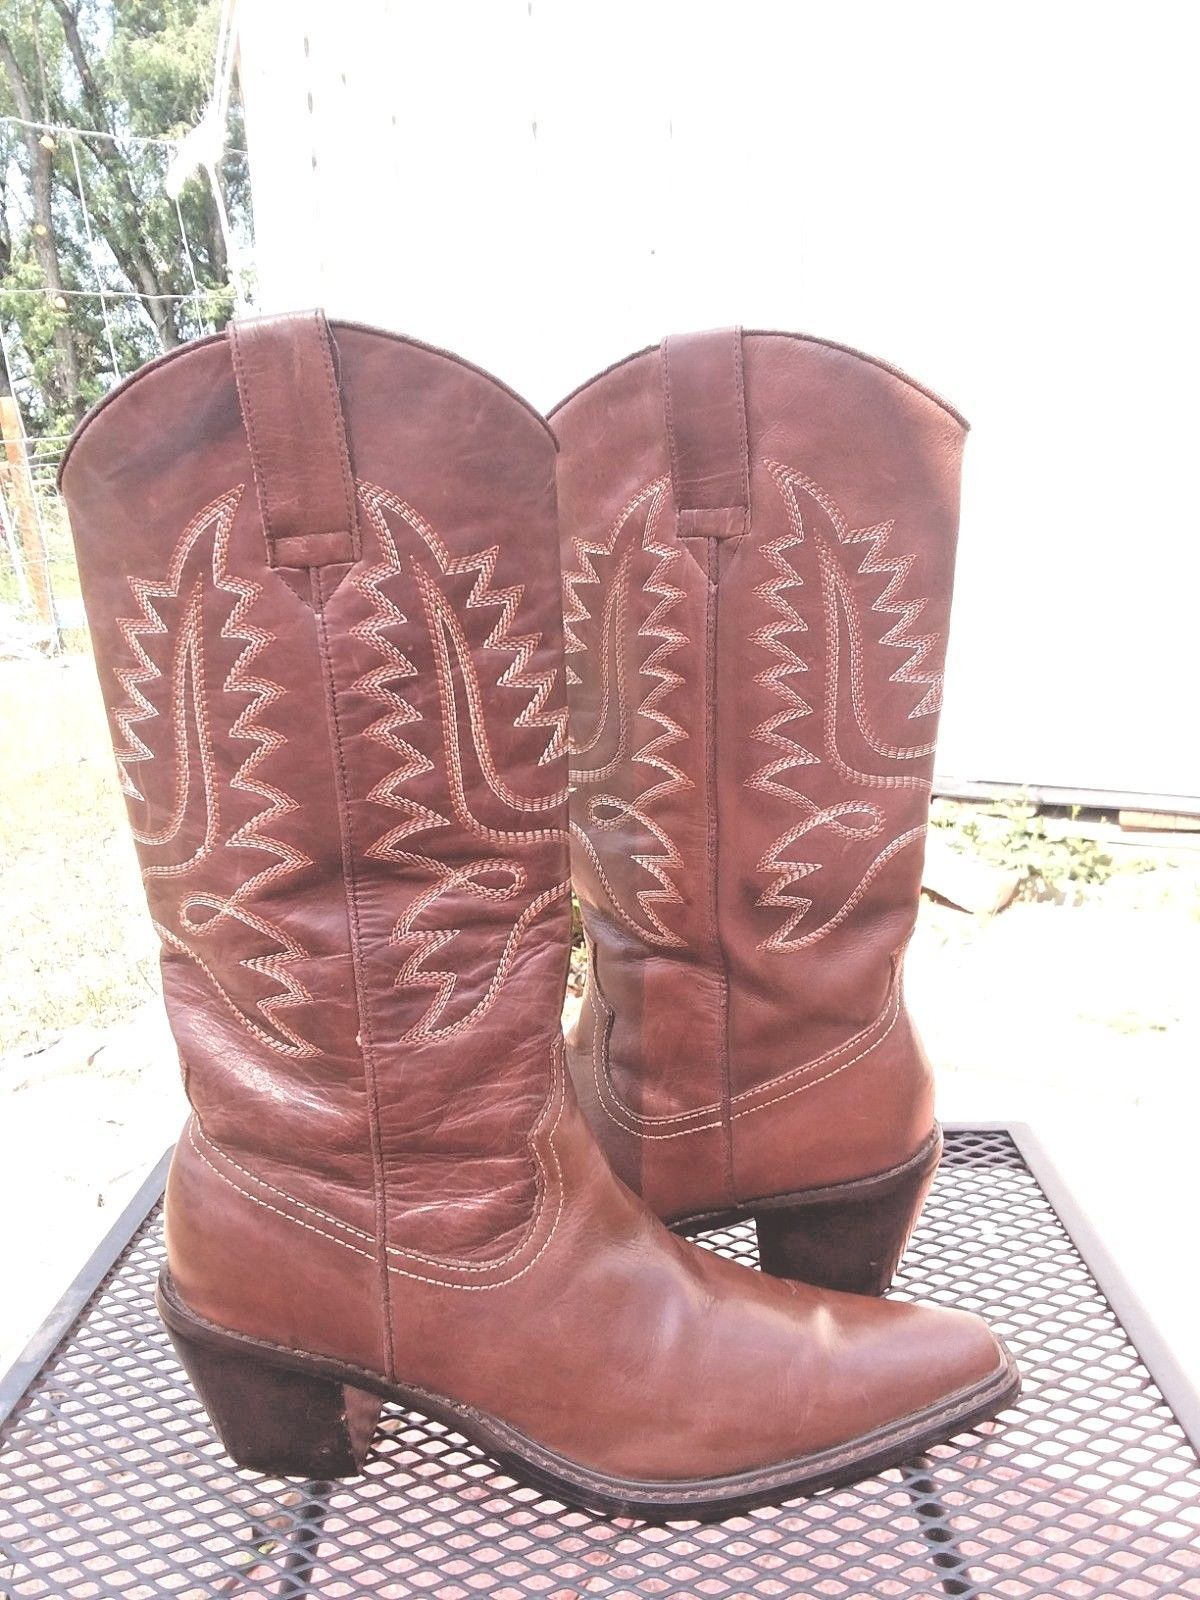 b22ec0dc452 Steve Madden Women s Distressed P-Hide Brown Leather Western Boots Sz.6.5M